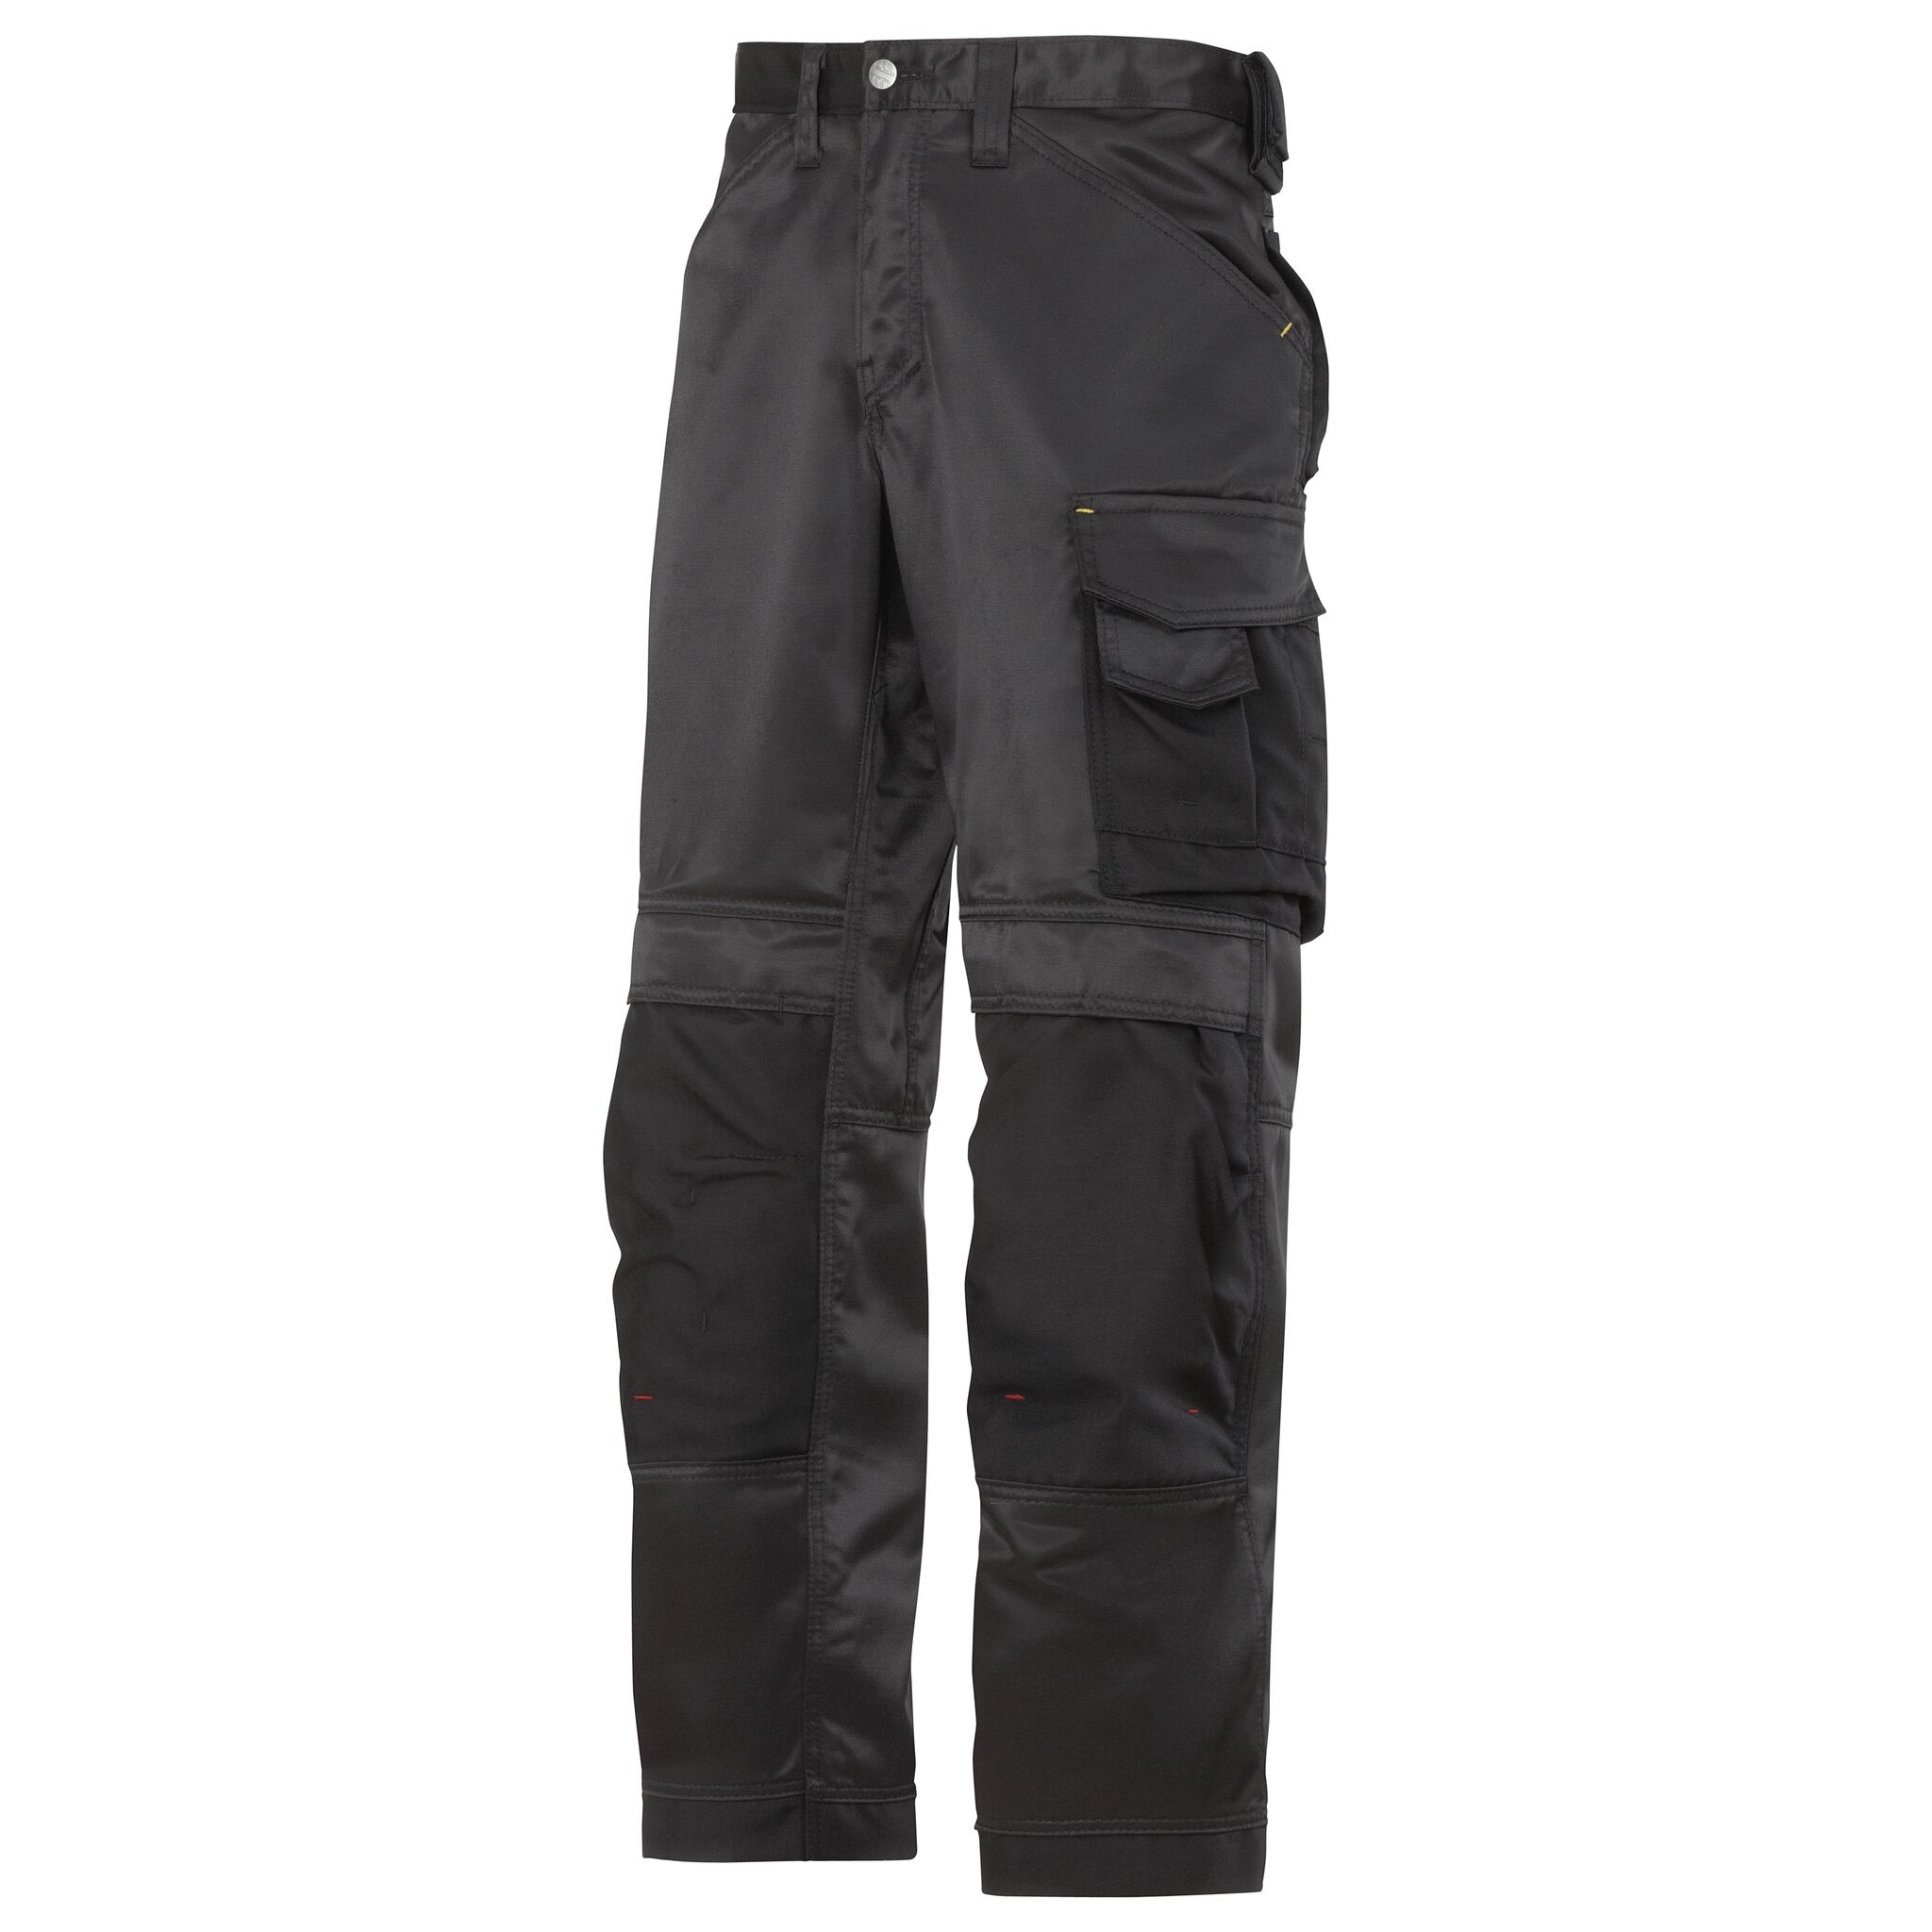 Snickers Mens DuraTwill Craftsmen Non Holster Trousers (30R) (Black)